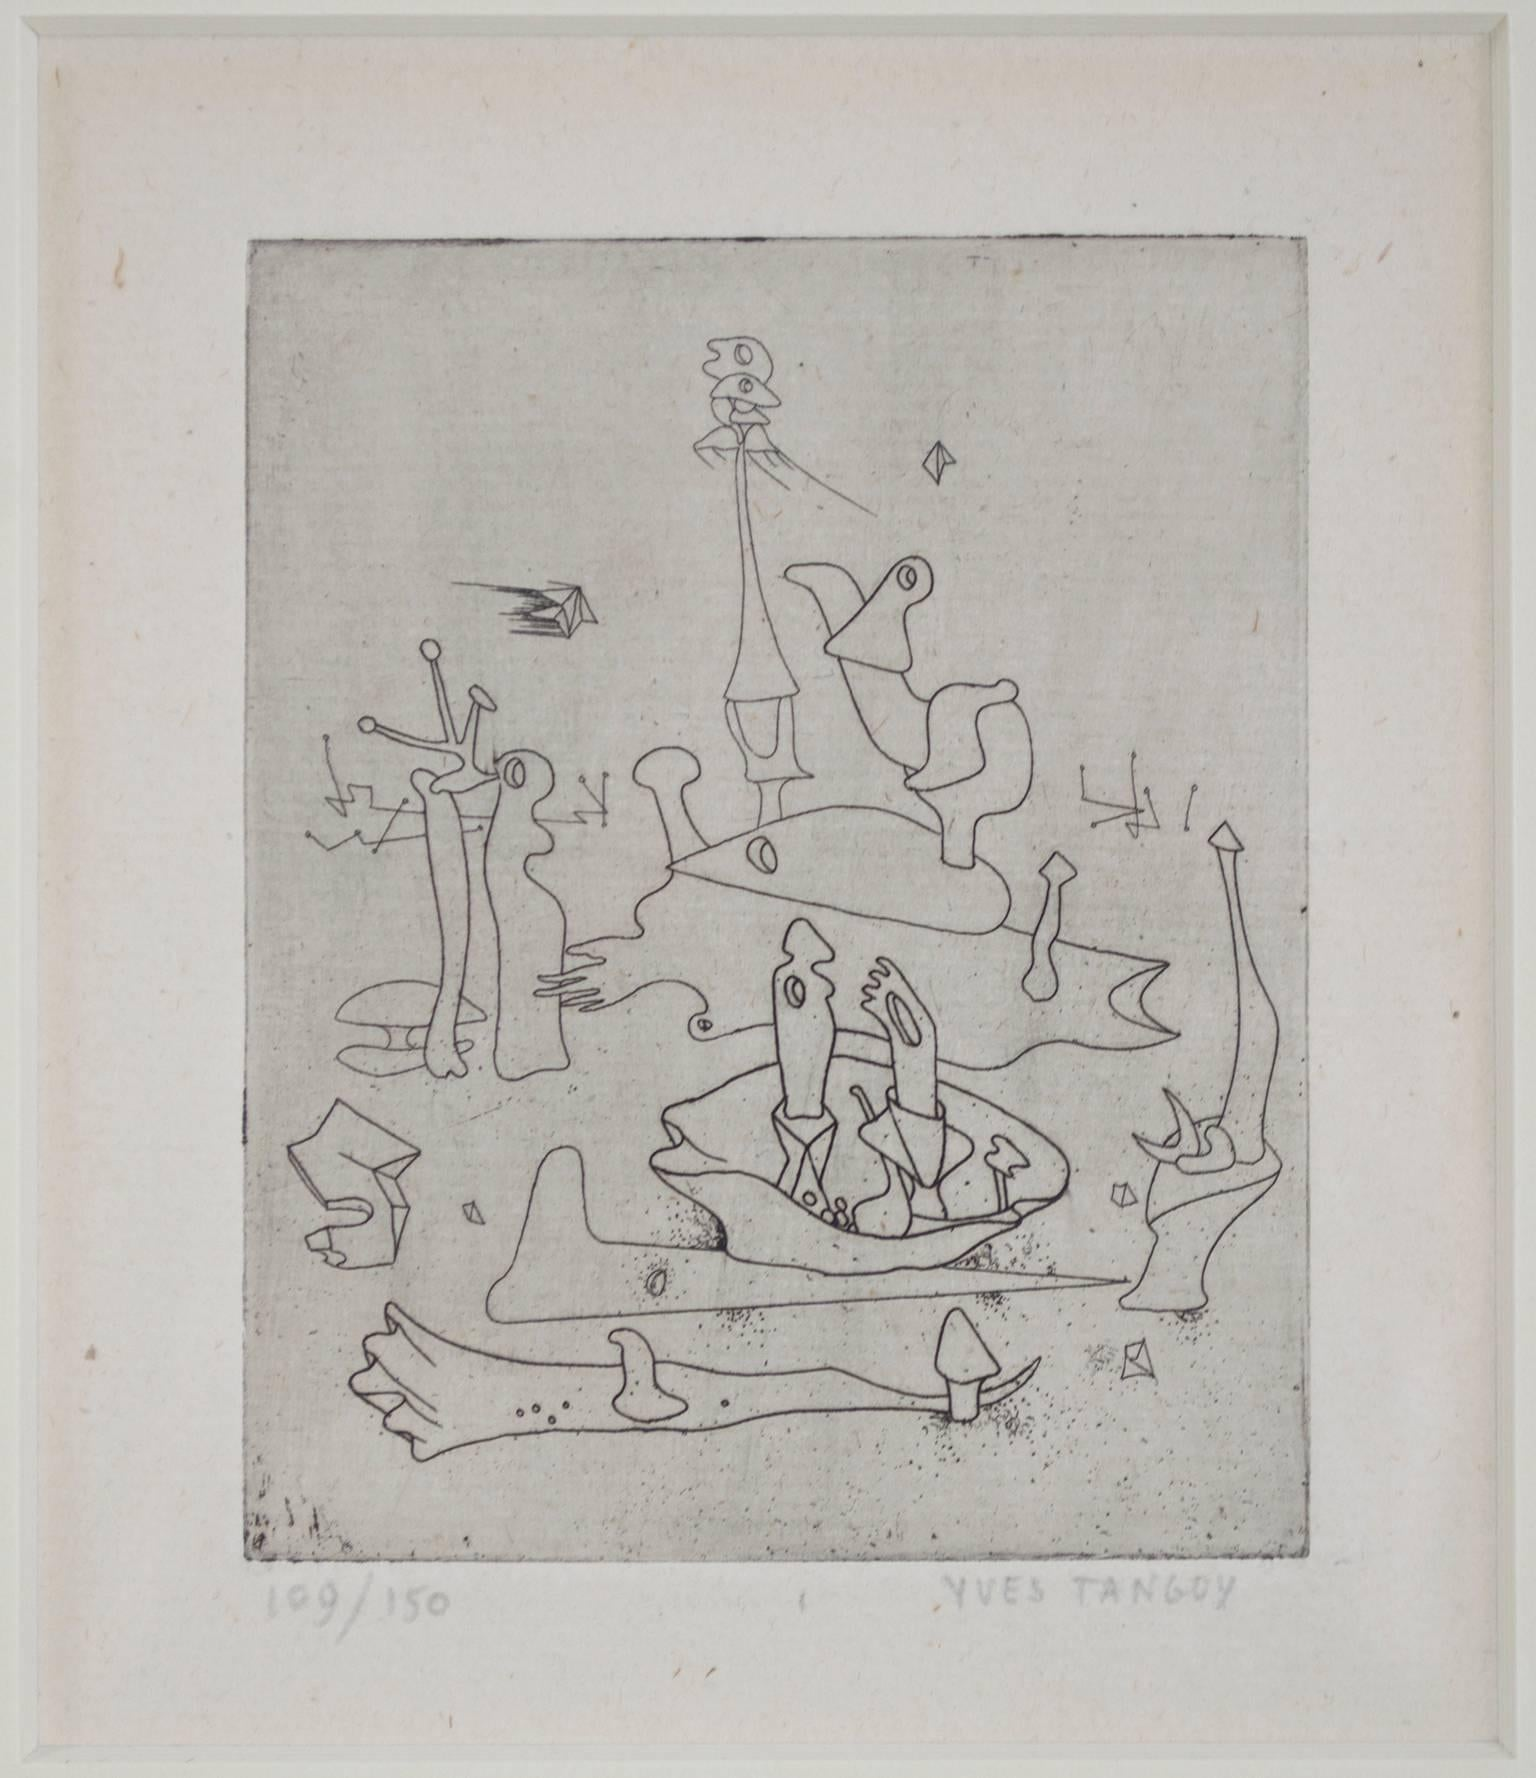 """""""Solidarity,"""" Etching of an Surrealist Landscape signed by Yves Tanguy"""